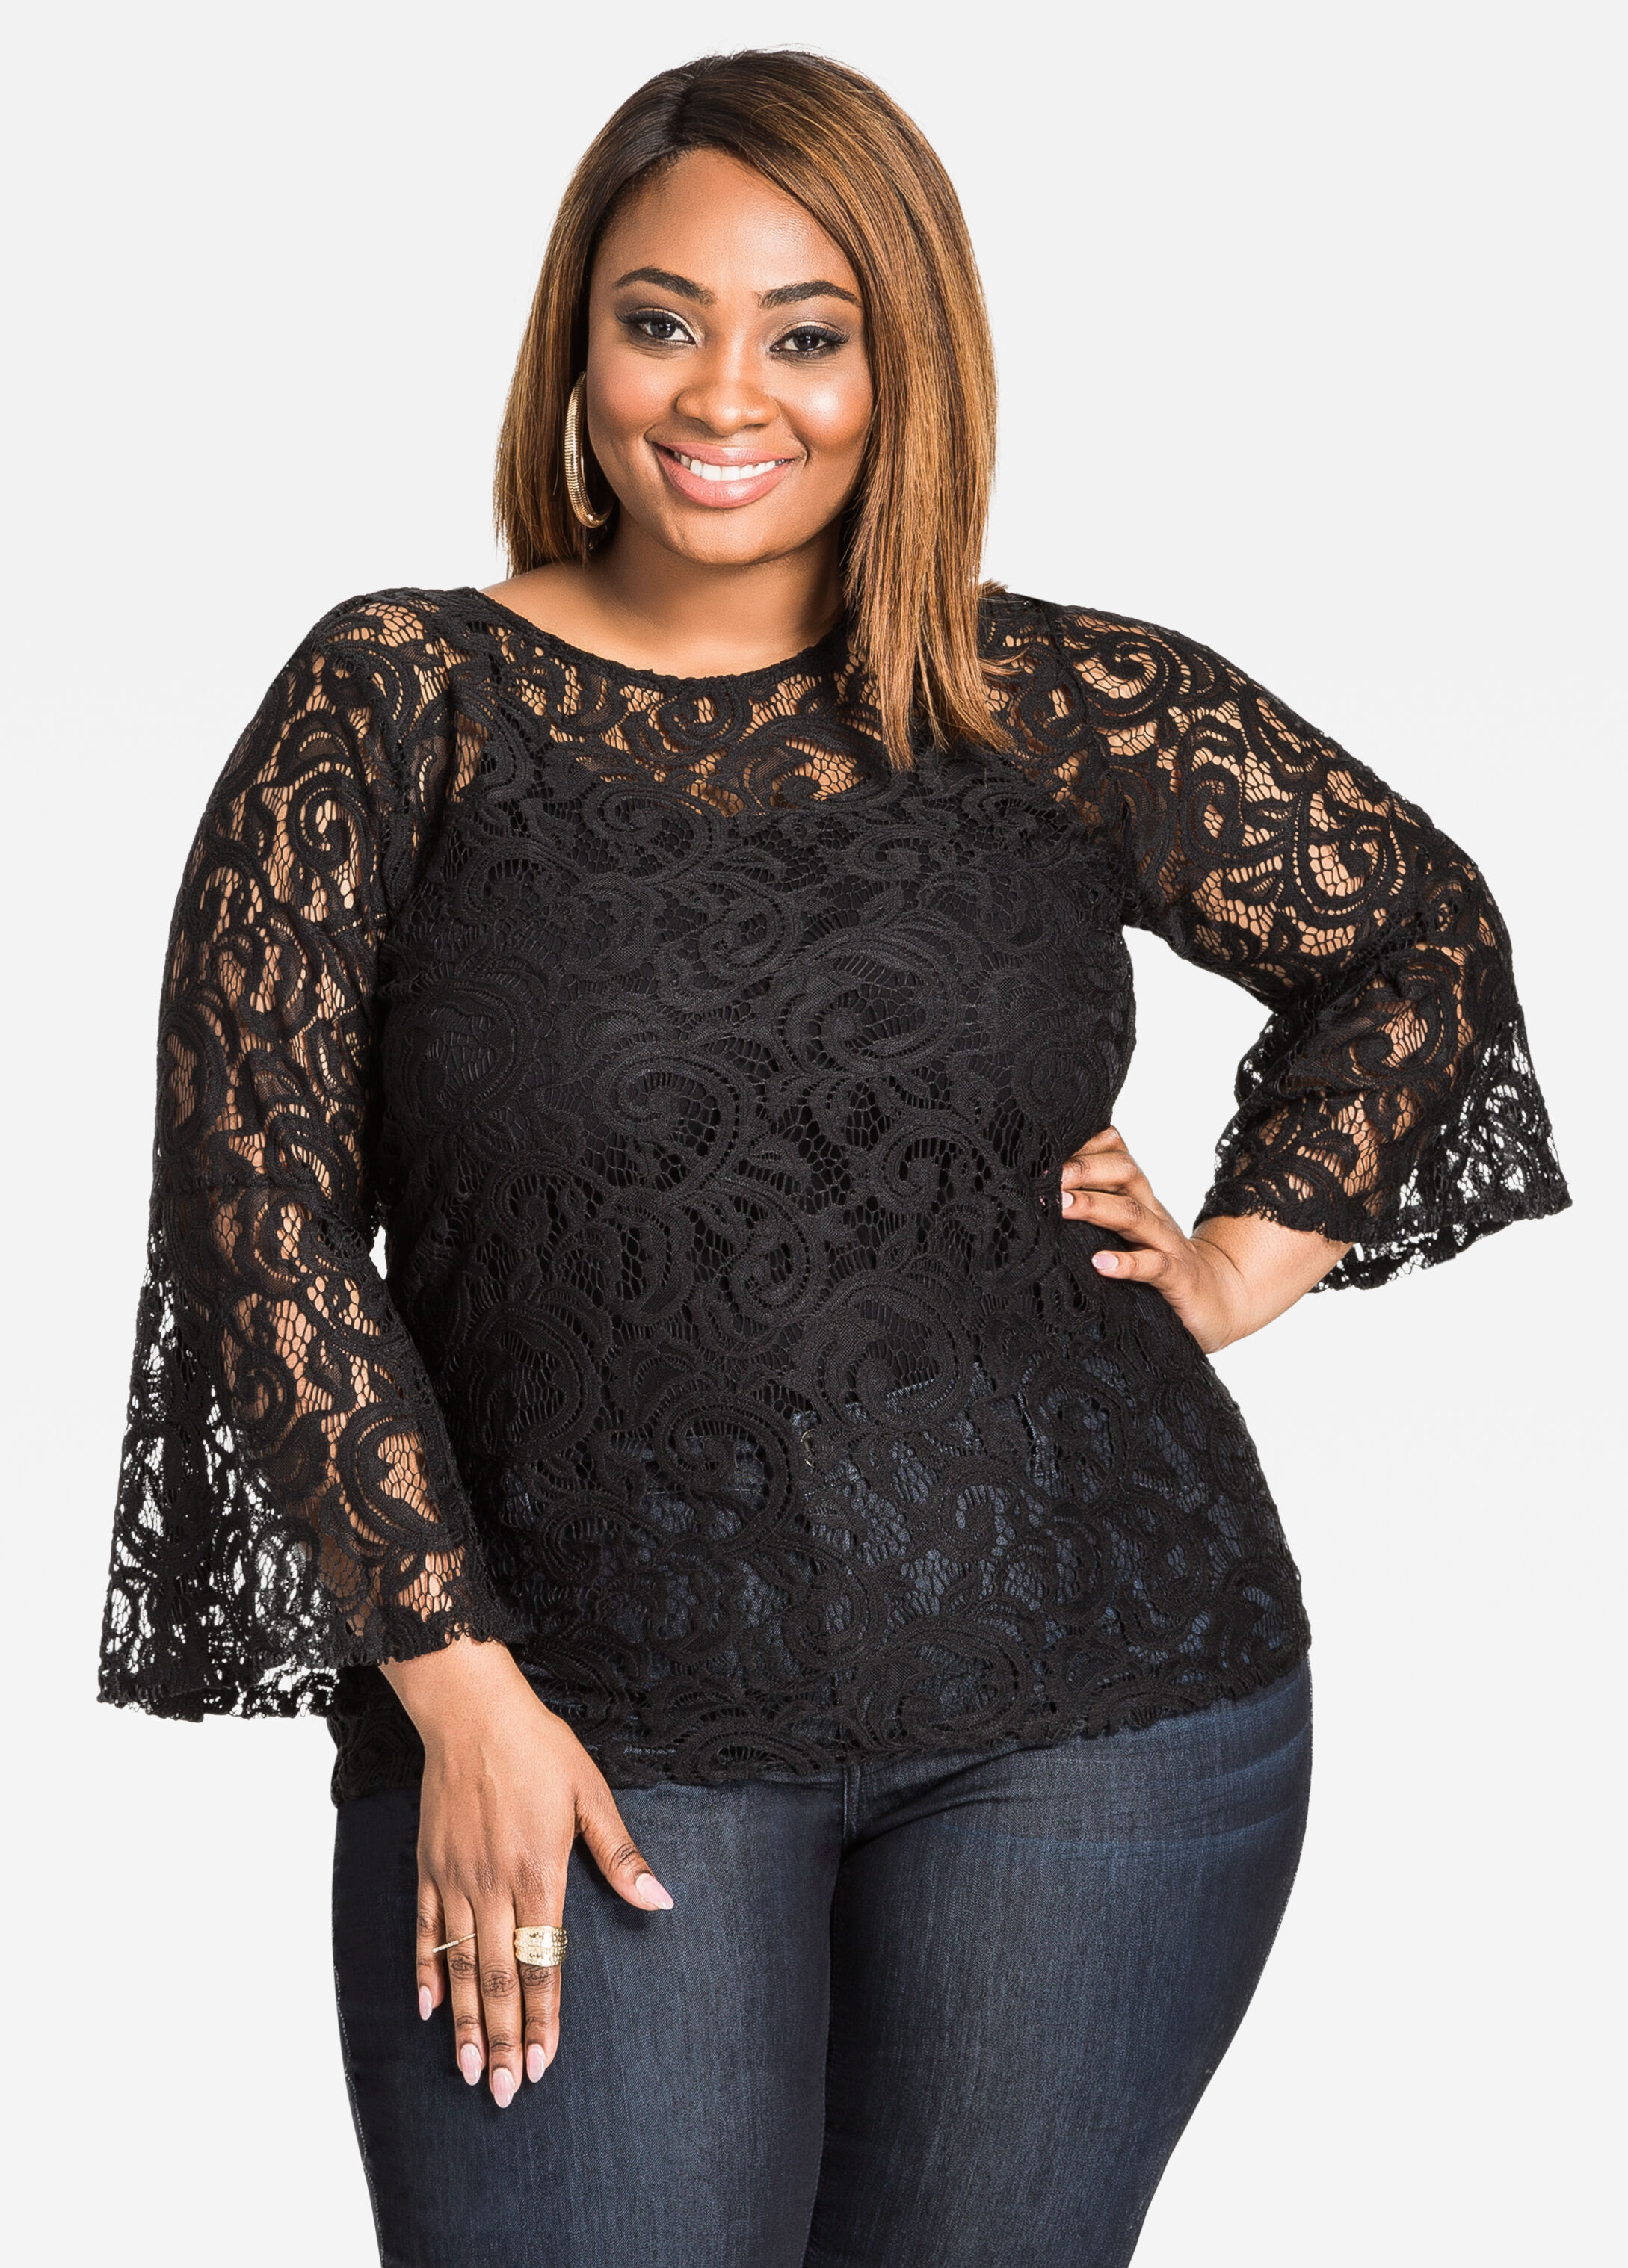 Buy Plus Size Sheer Black Tops - Ashley Stewart